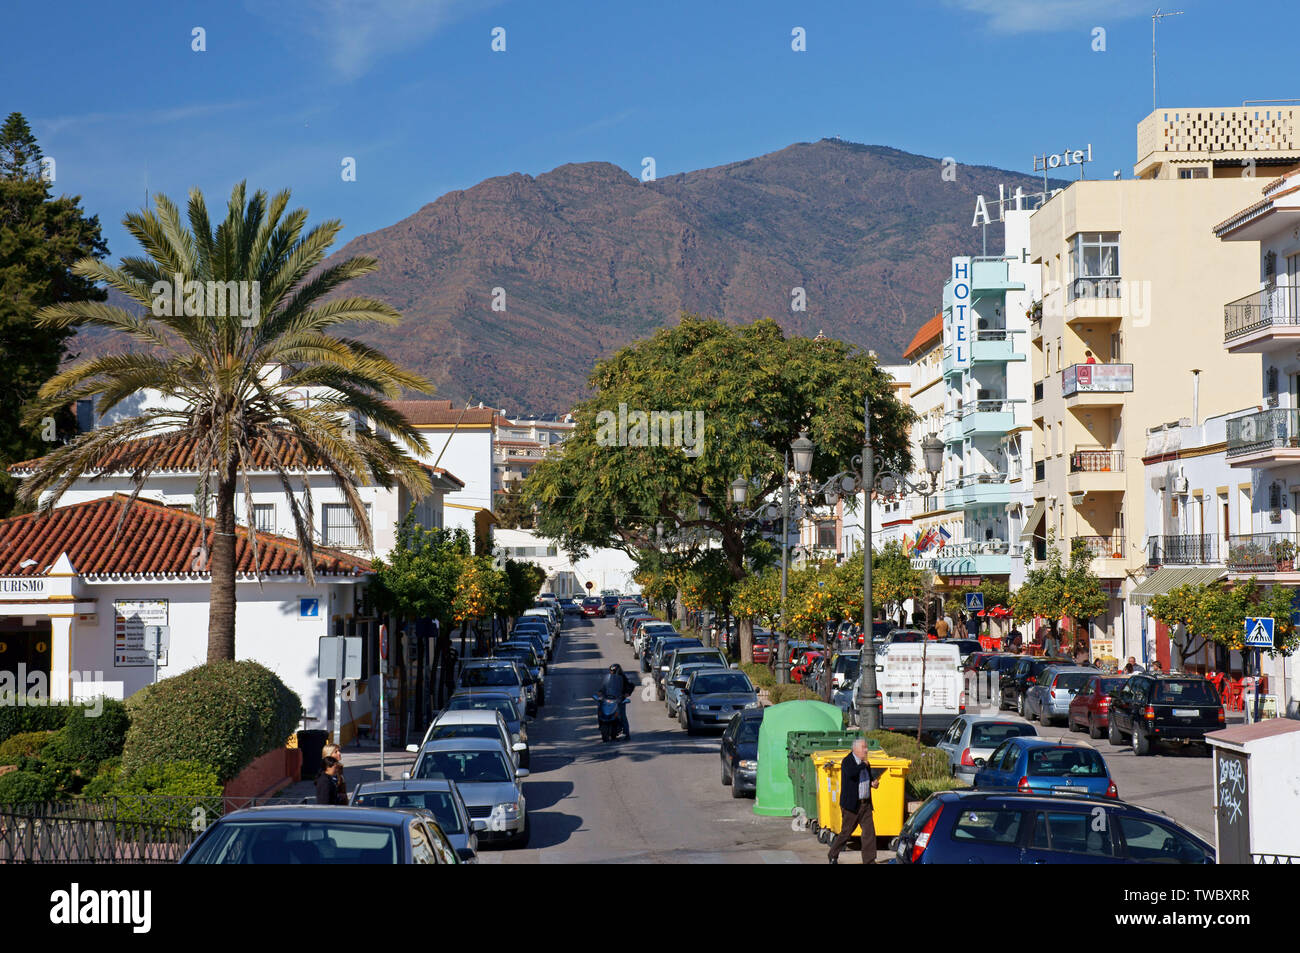 Andalucia in Spain: central Estepona - Stock Image